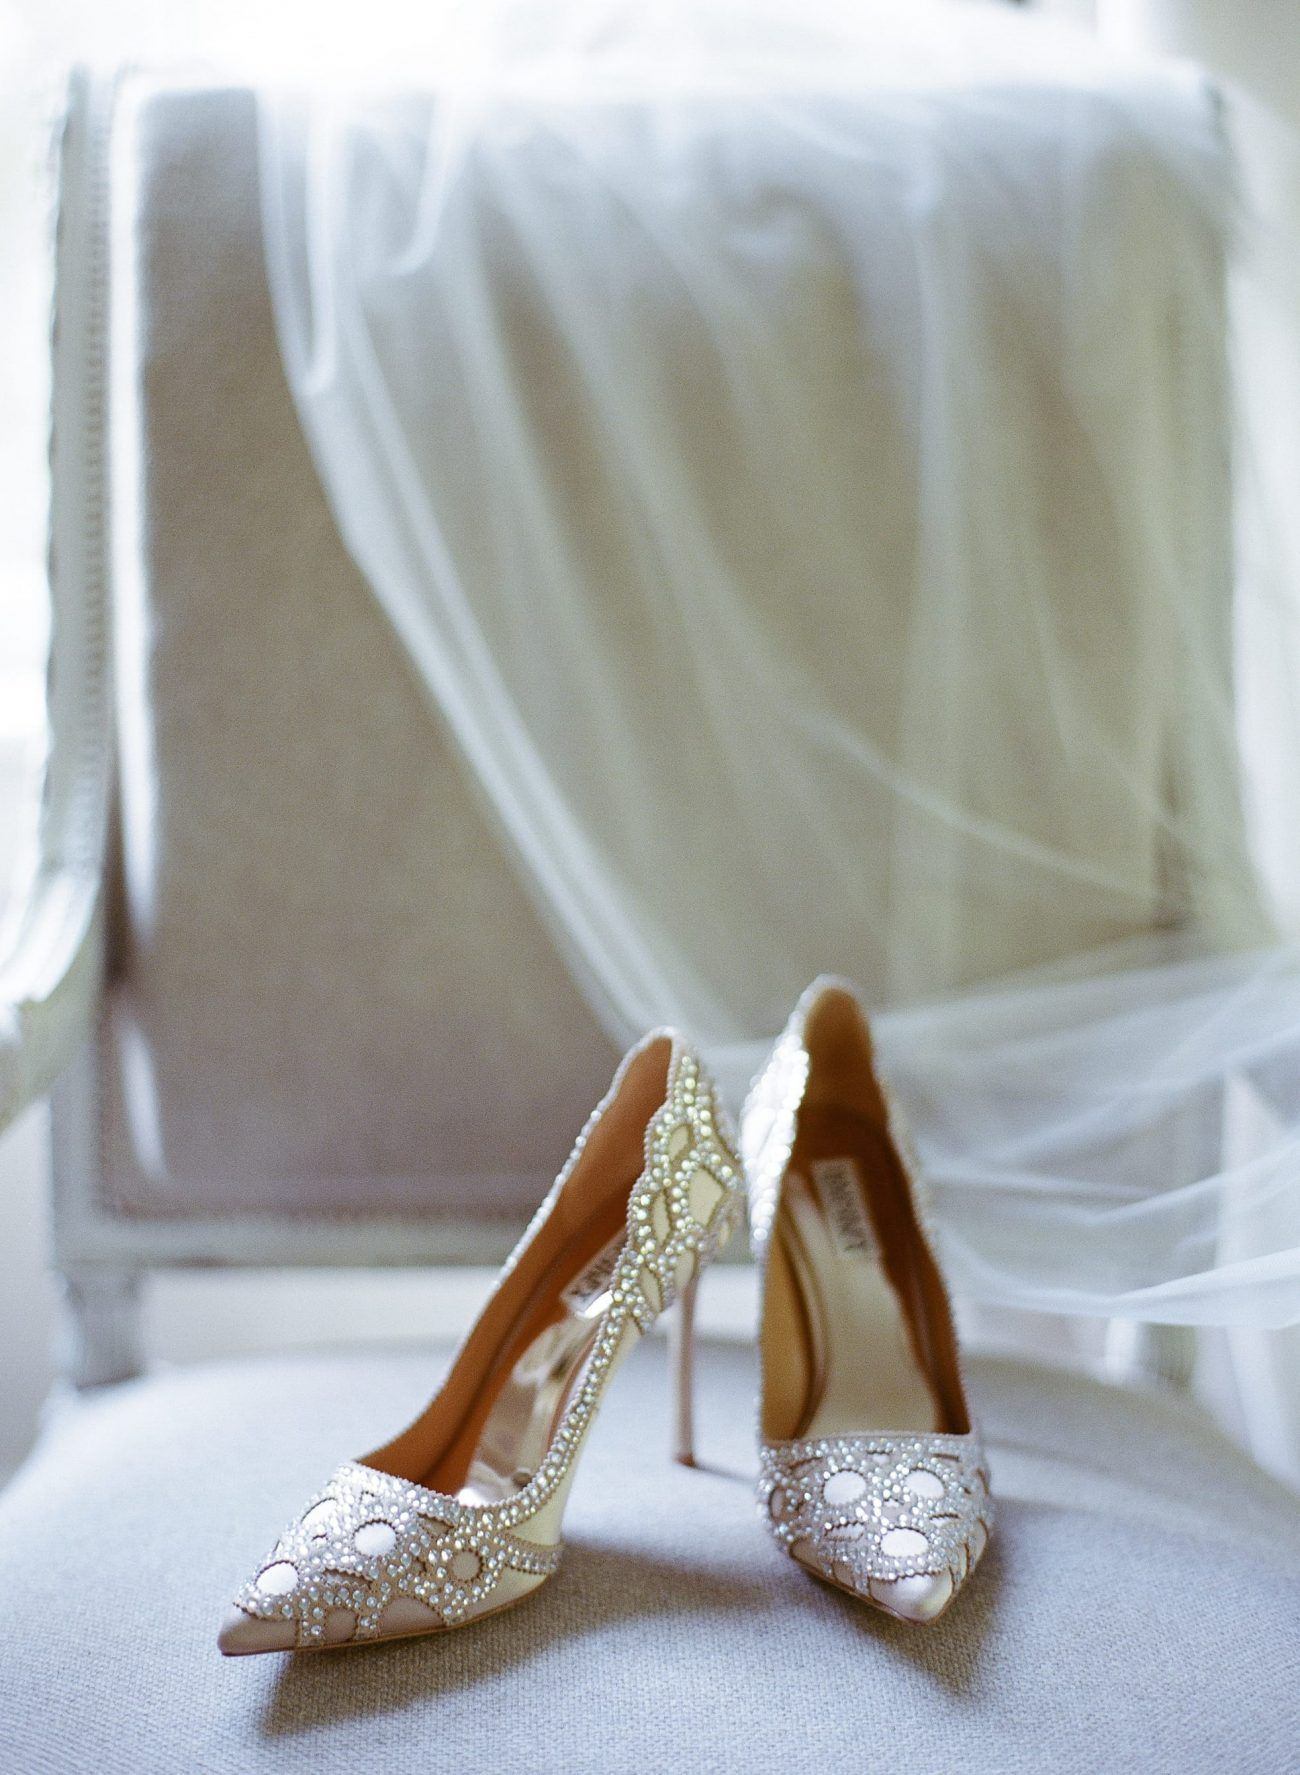 2-glamorous-bridal-wedding-shoes